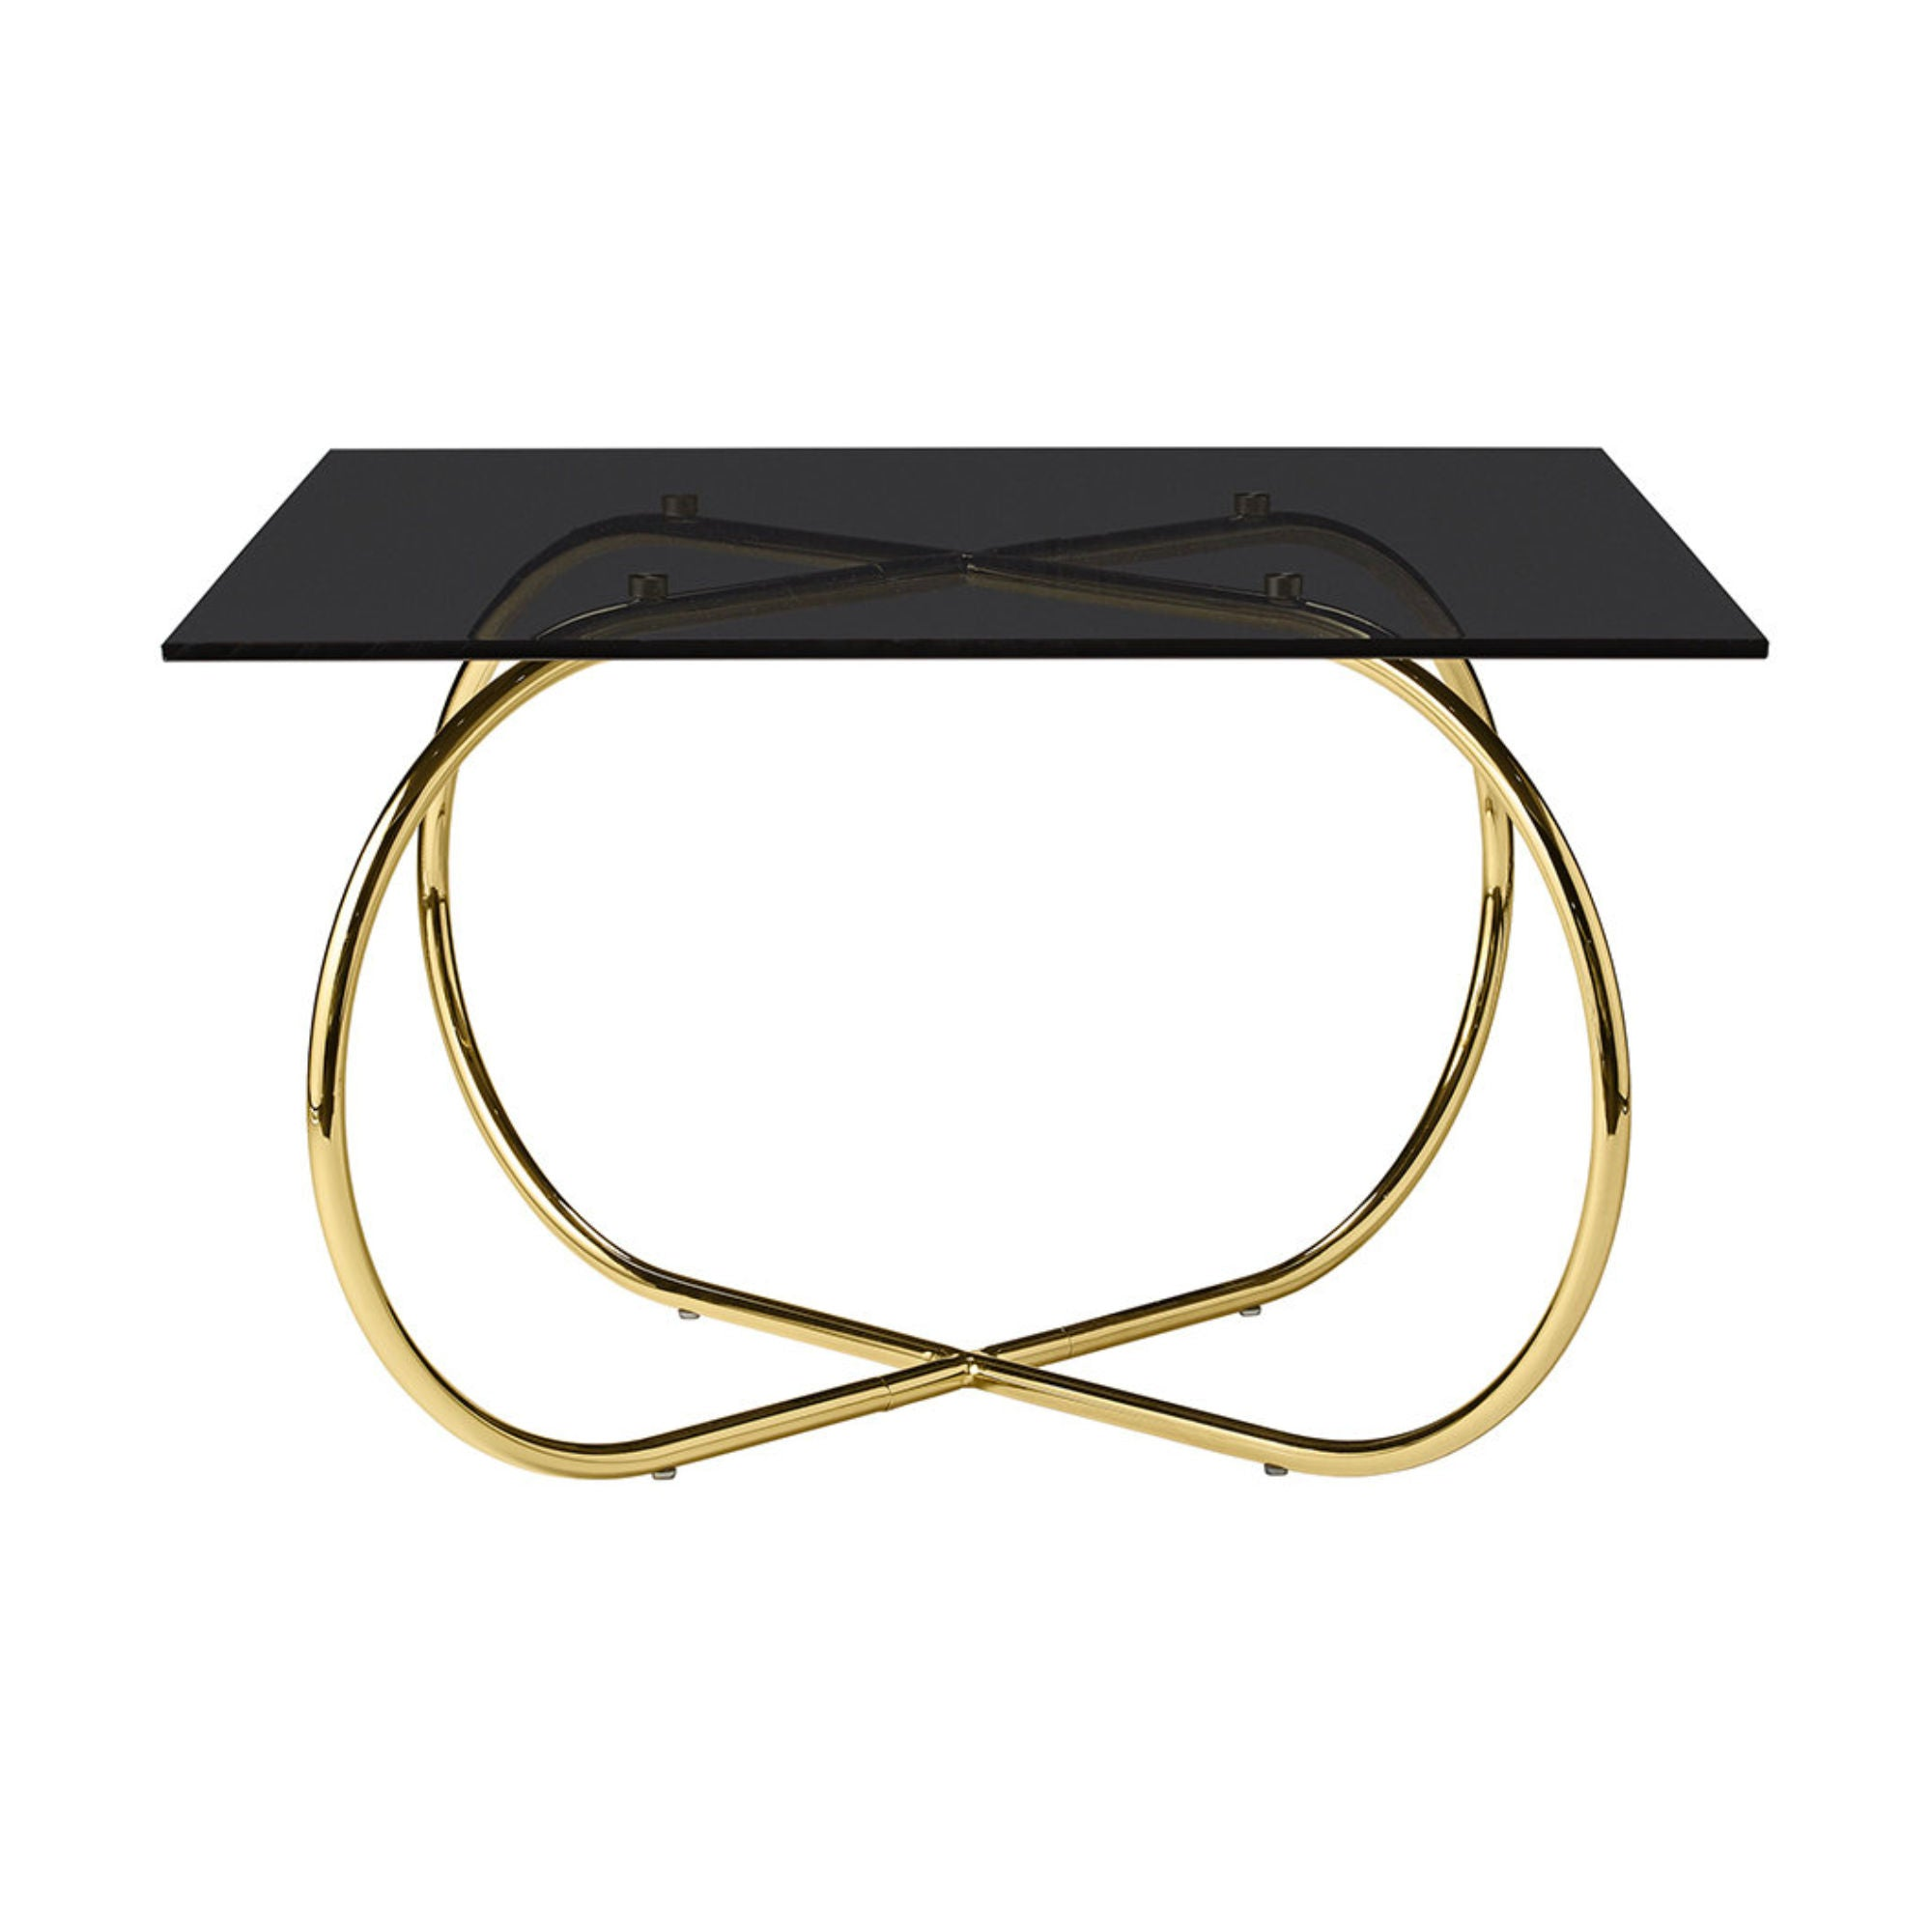 AYTM Angui Coffee Table , Black-Anthracite